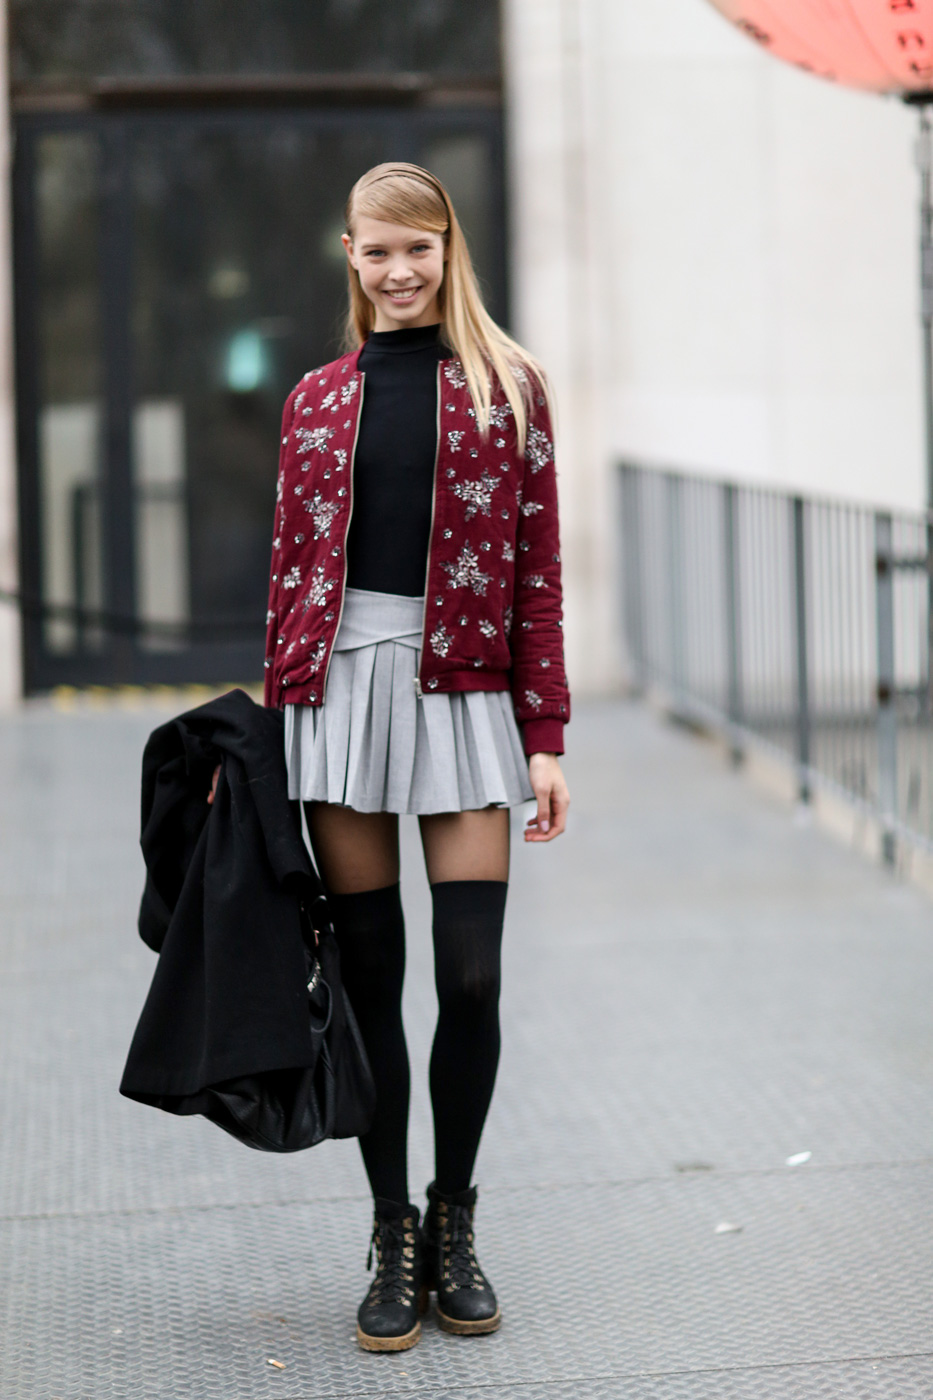 The 50 Best Model Off Duty Outfits Of 2014 Stylecaster